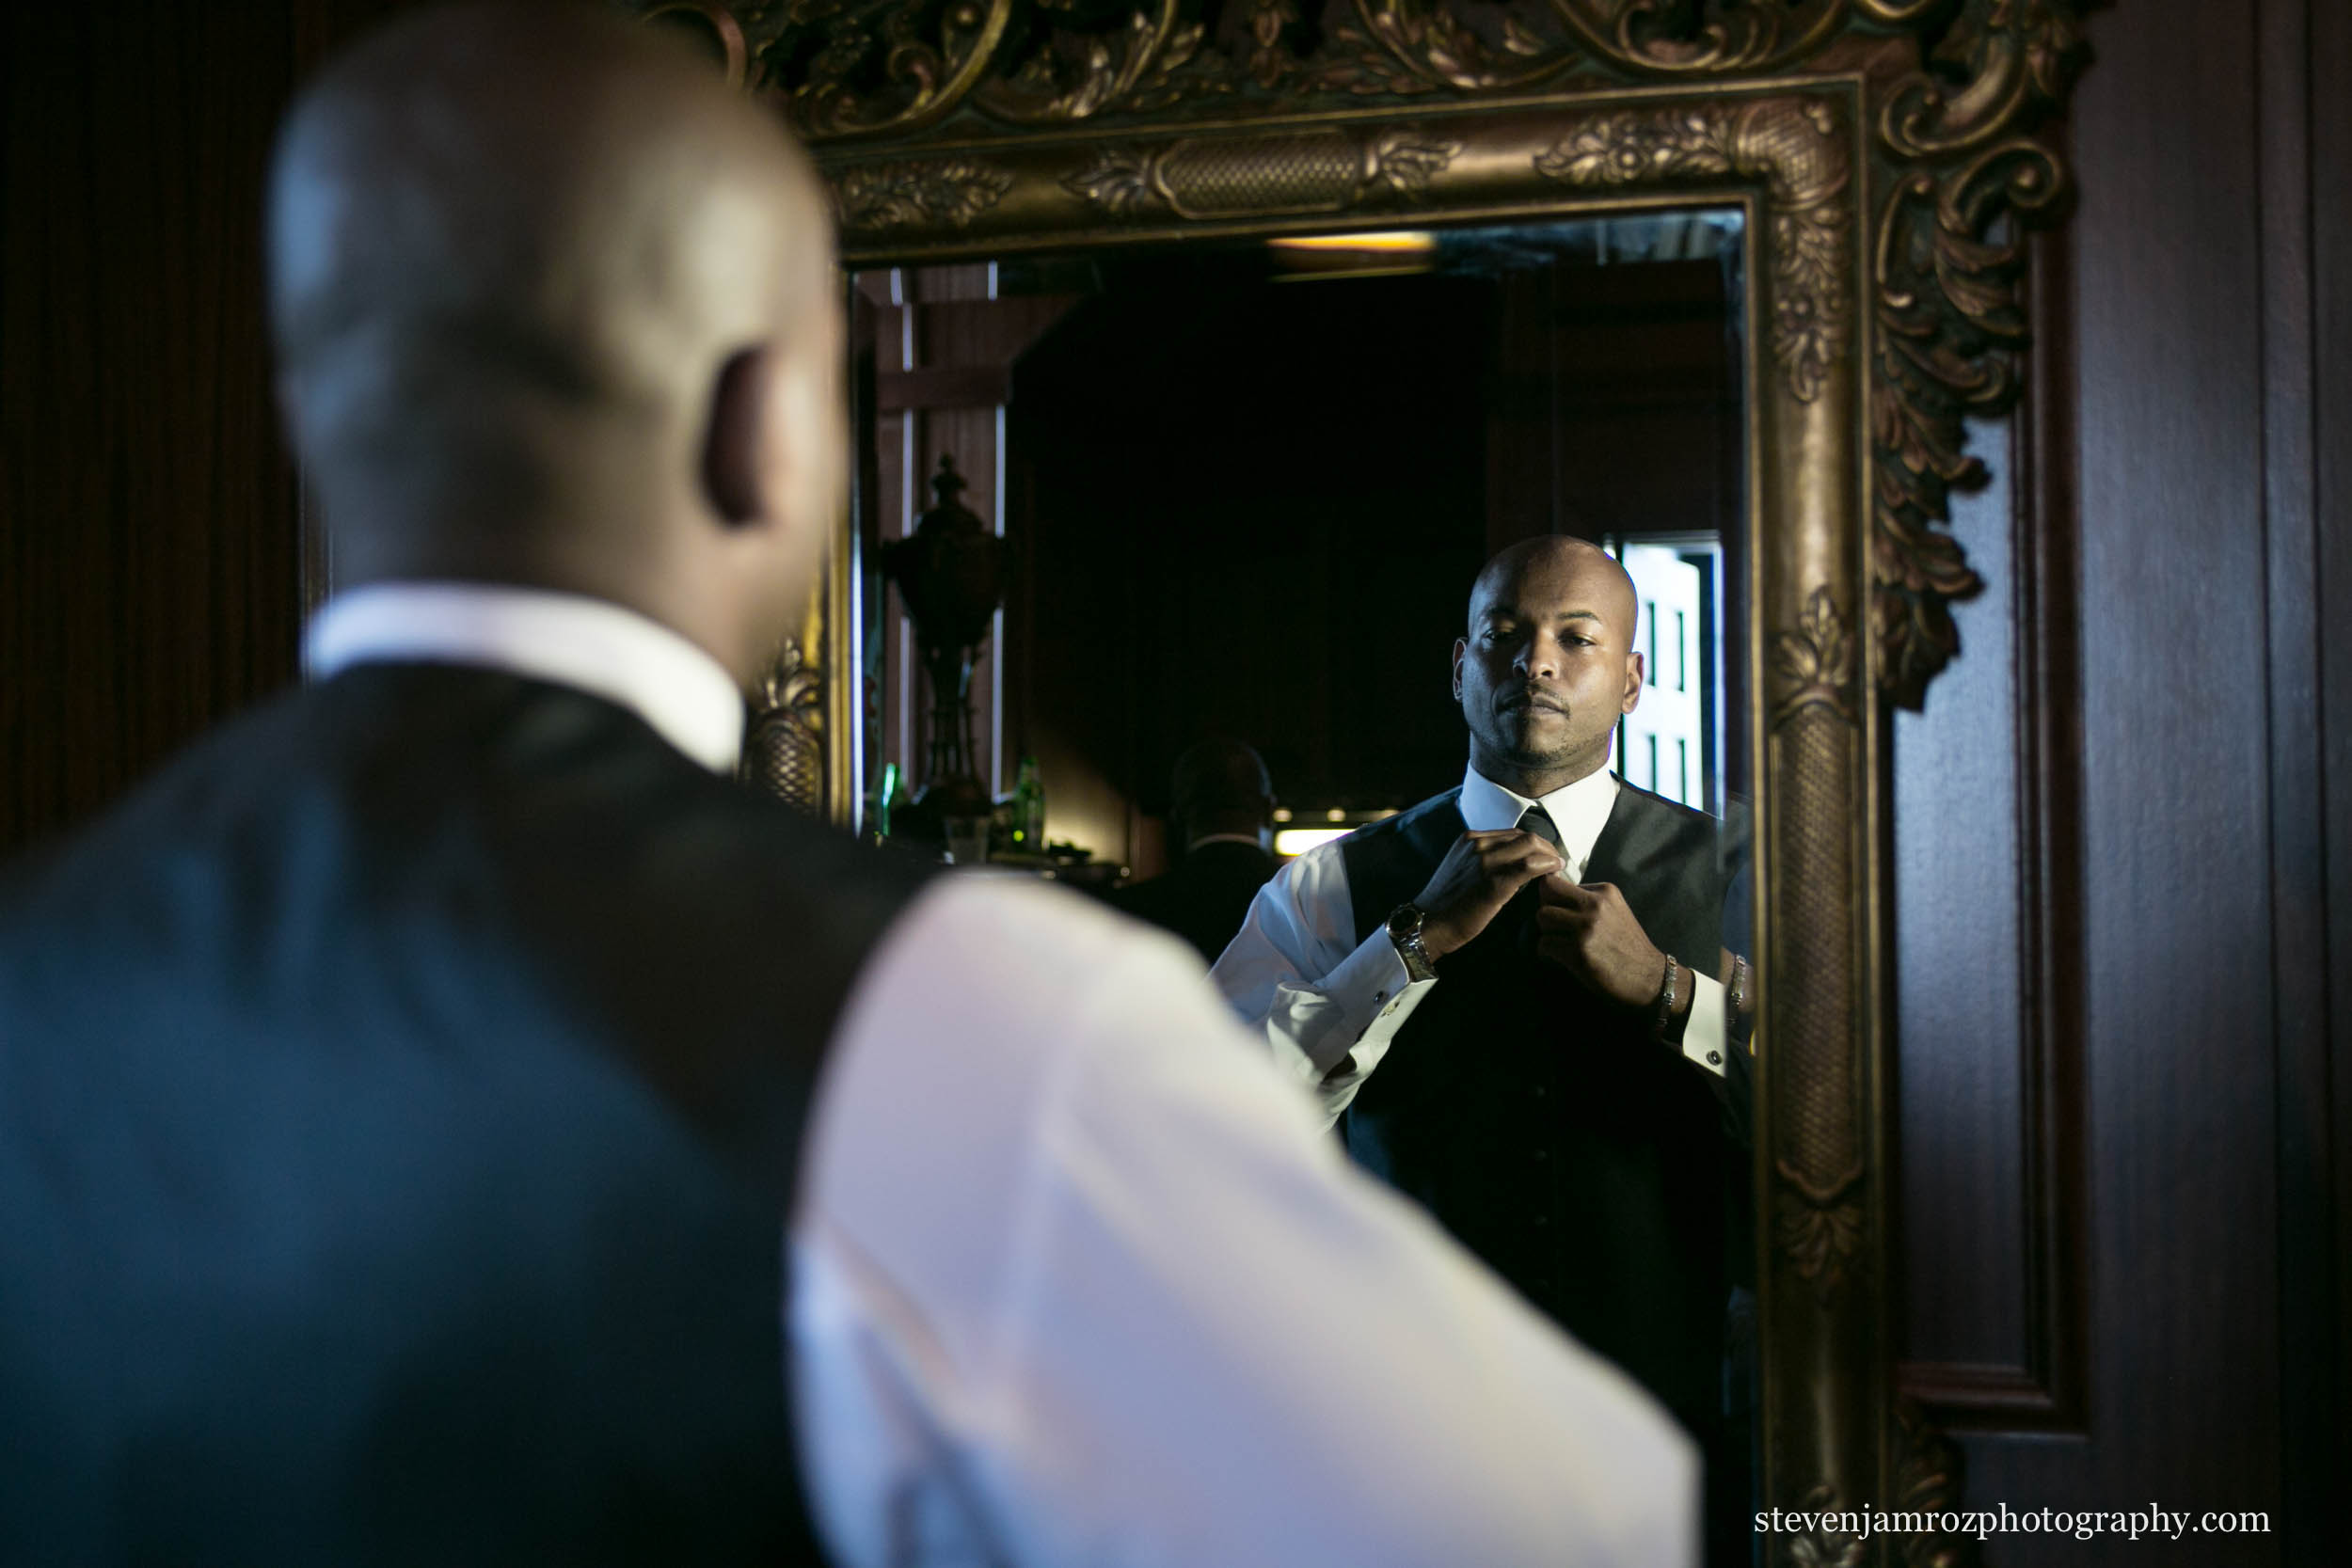 grooms-lounge-hall-at-landmark-wedding-photographer-steven-jamroz-photography-0015.jpg